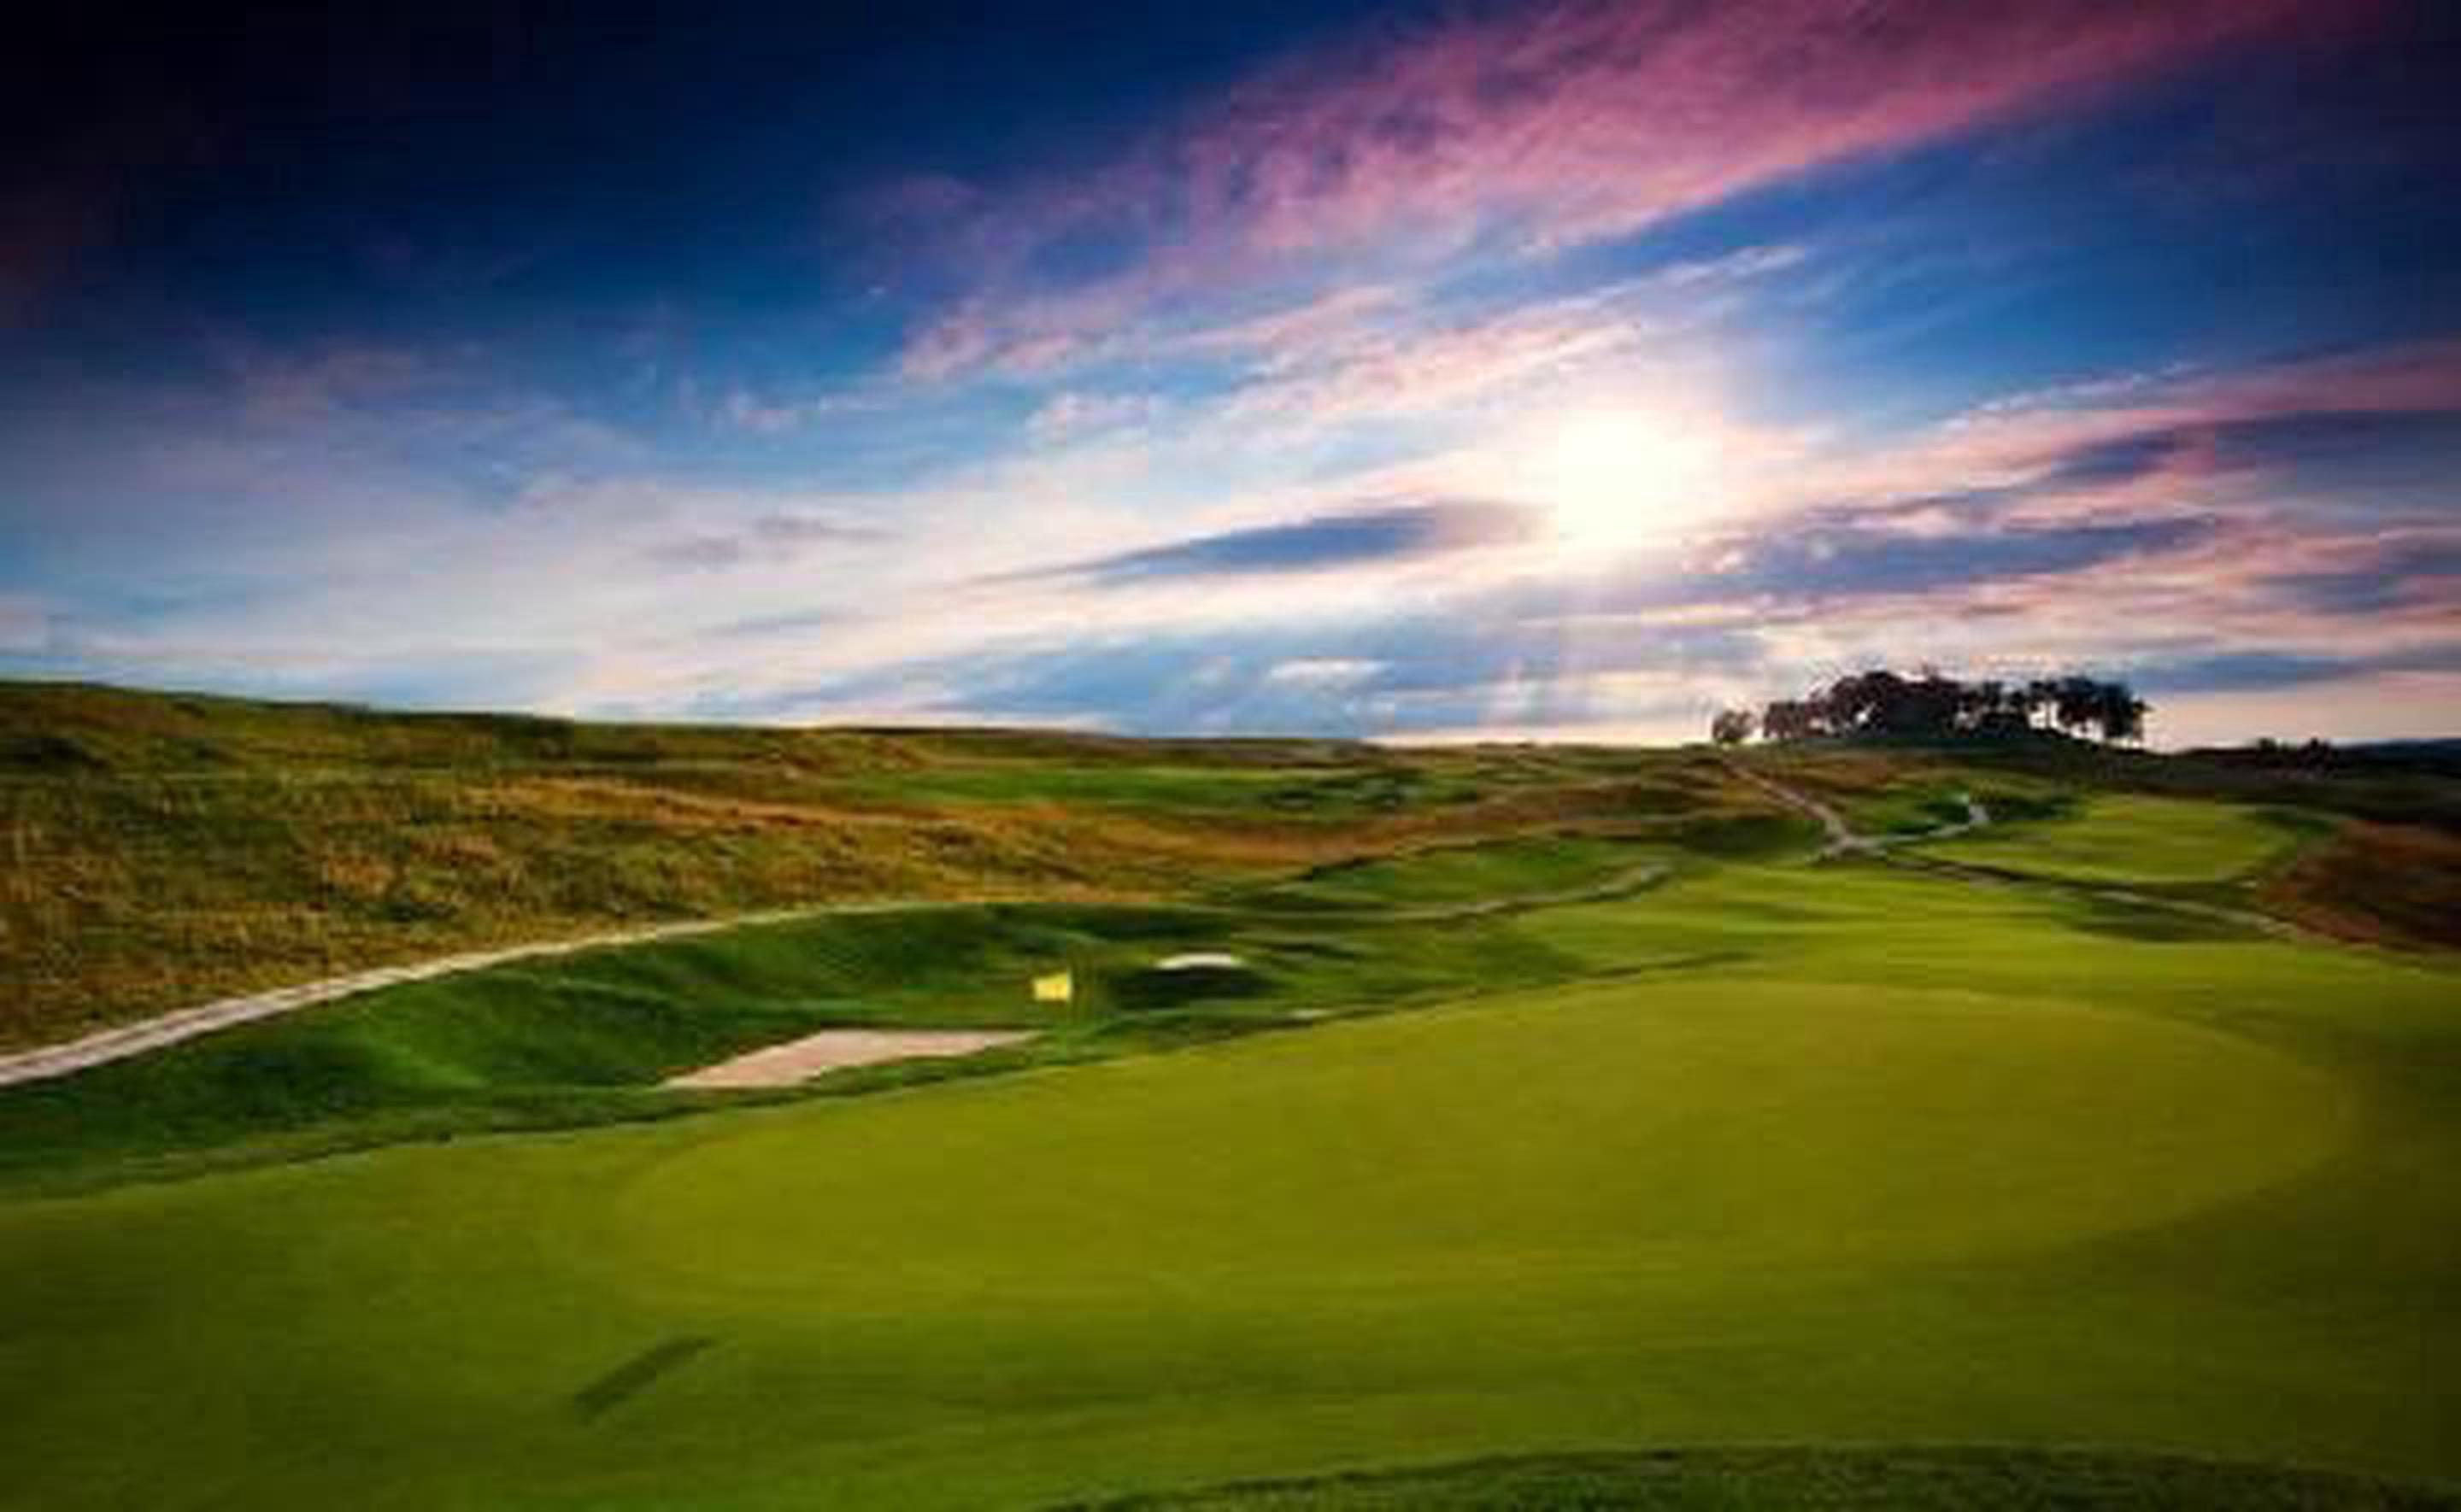 Donald Ross Golf CourseThis prolific Scot architect designed over 400 courses over the length of his 48 year career.